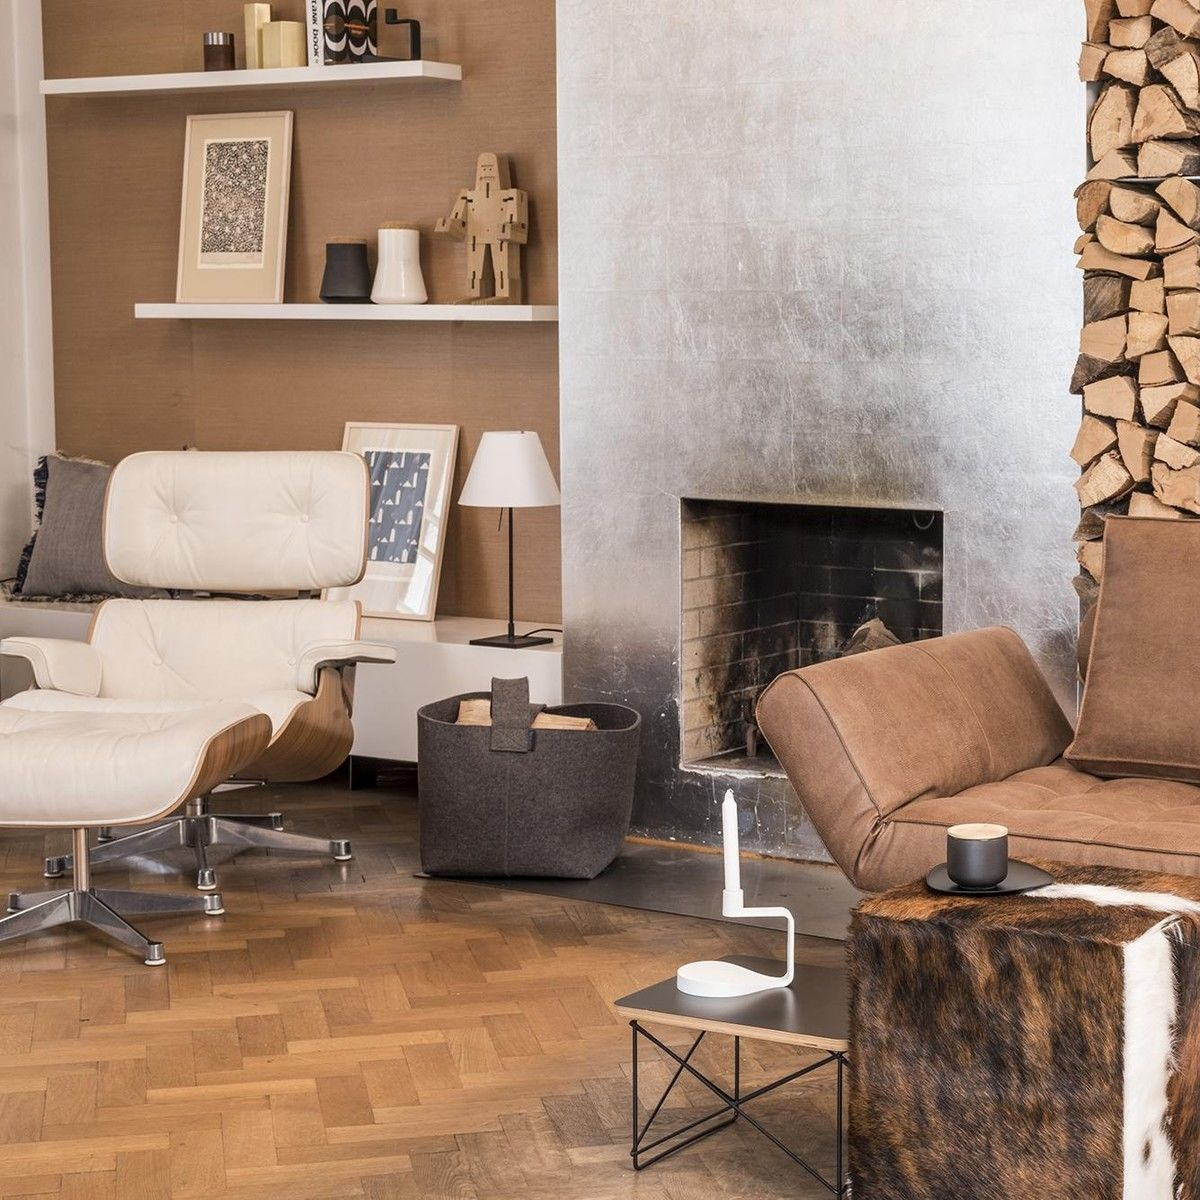 Eames lounge chair in room - Vitra Eames Lounge Chair Xl New Size